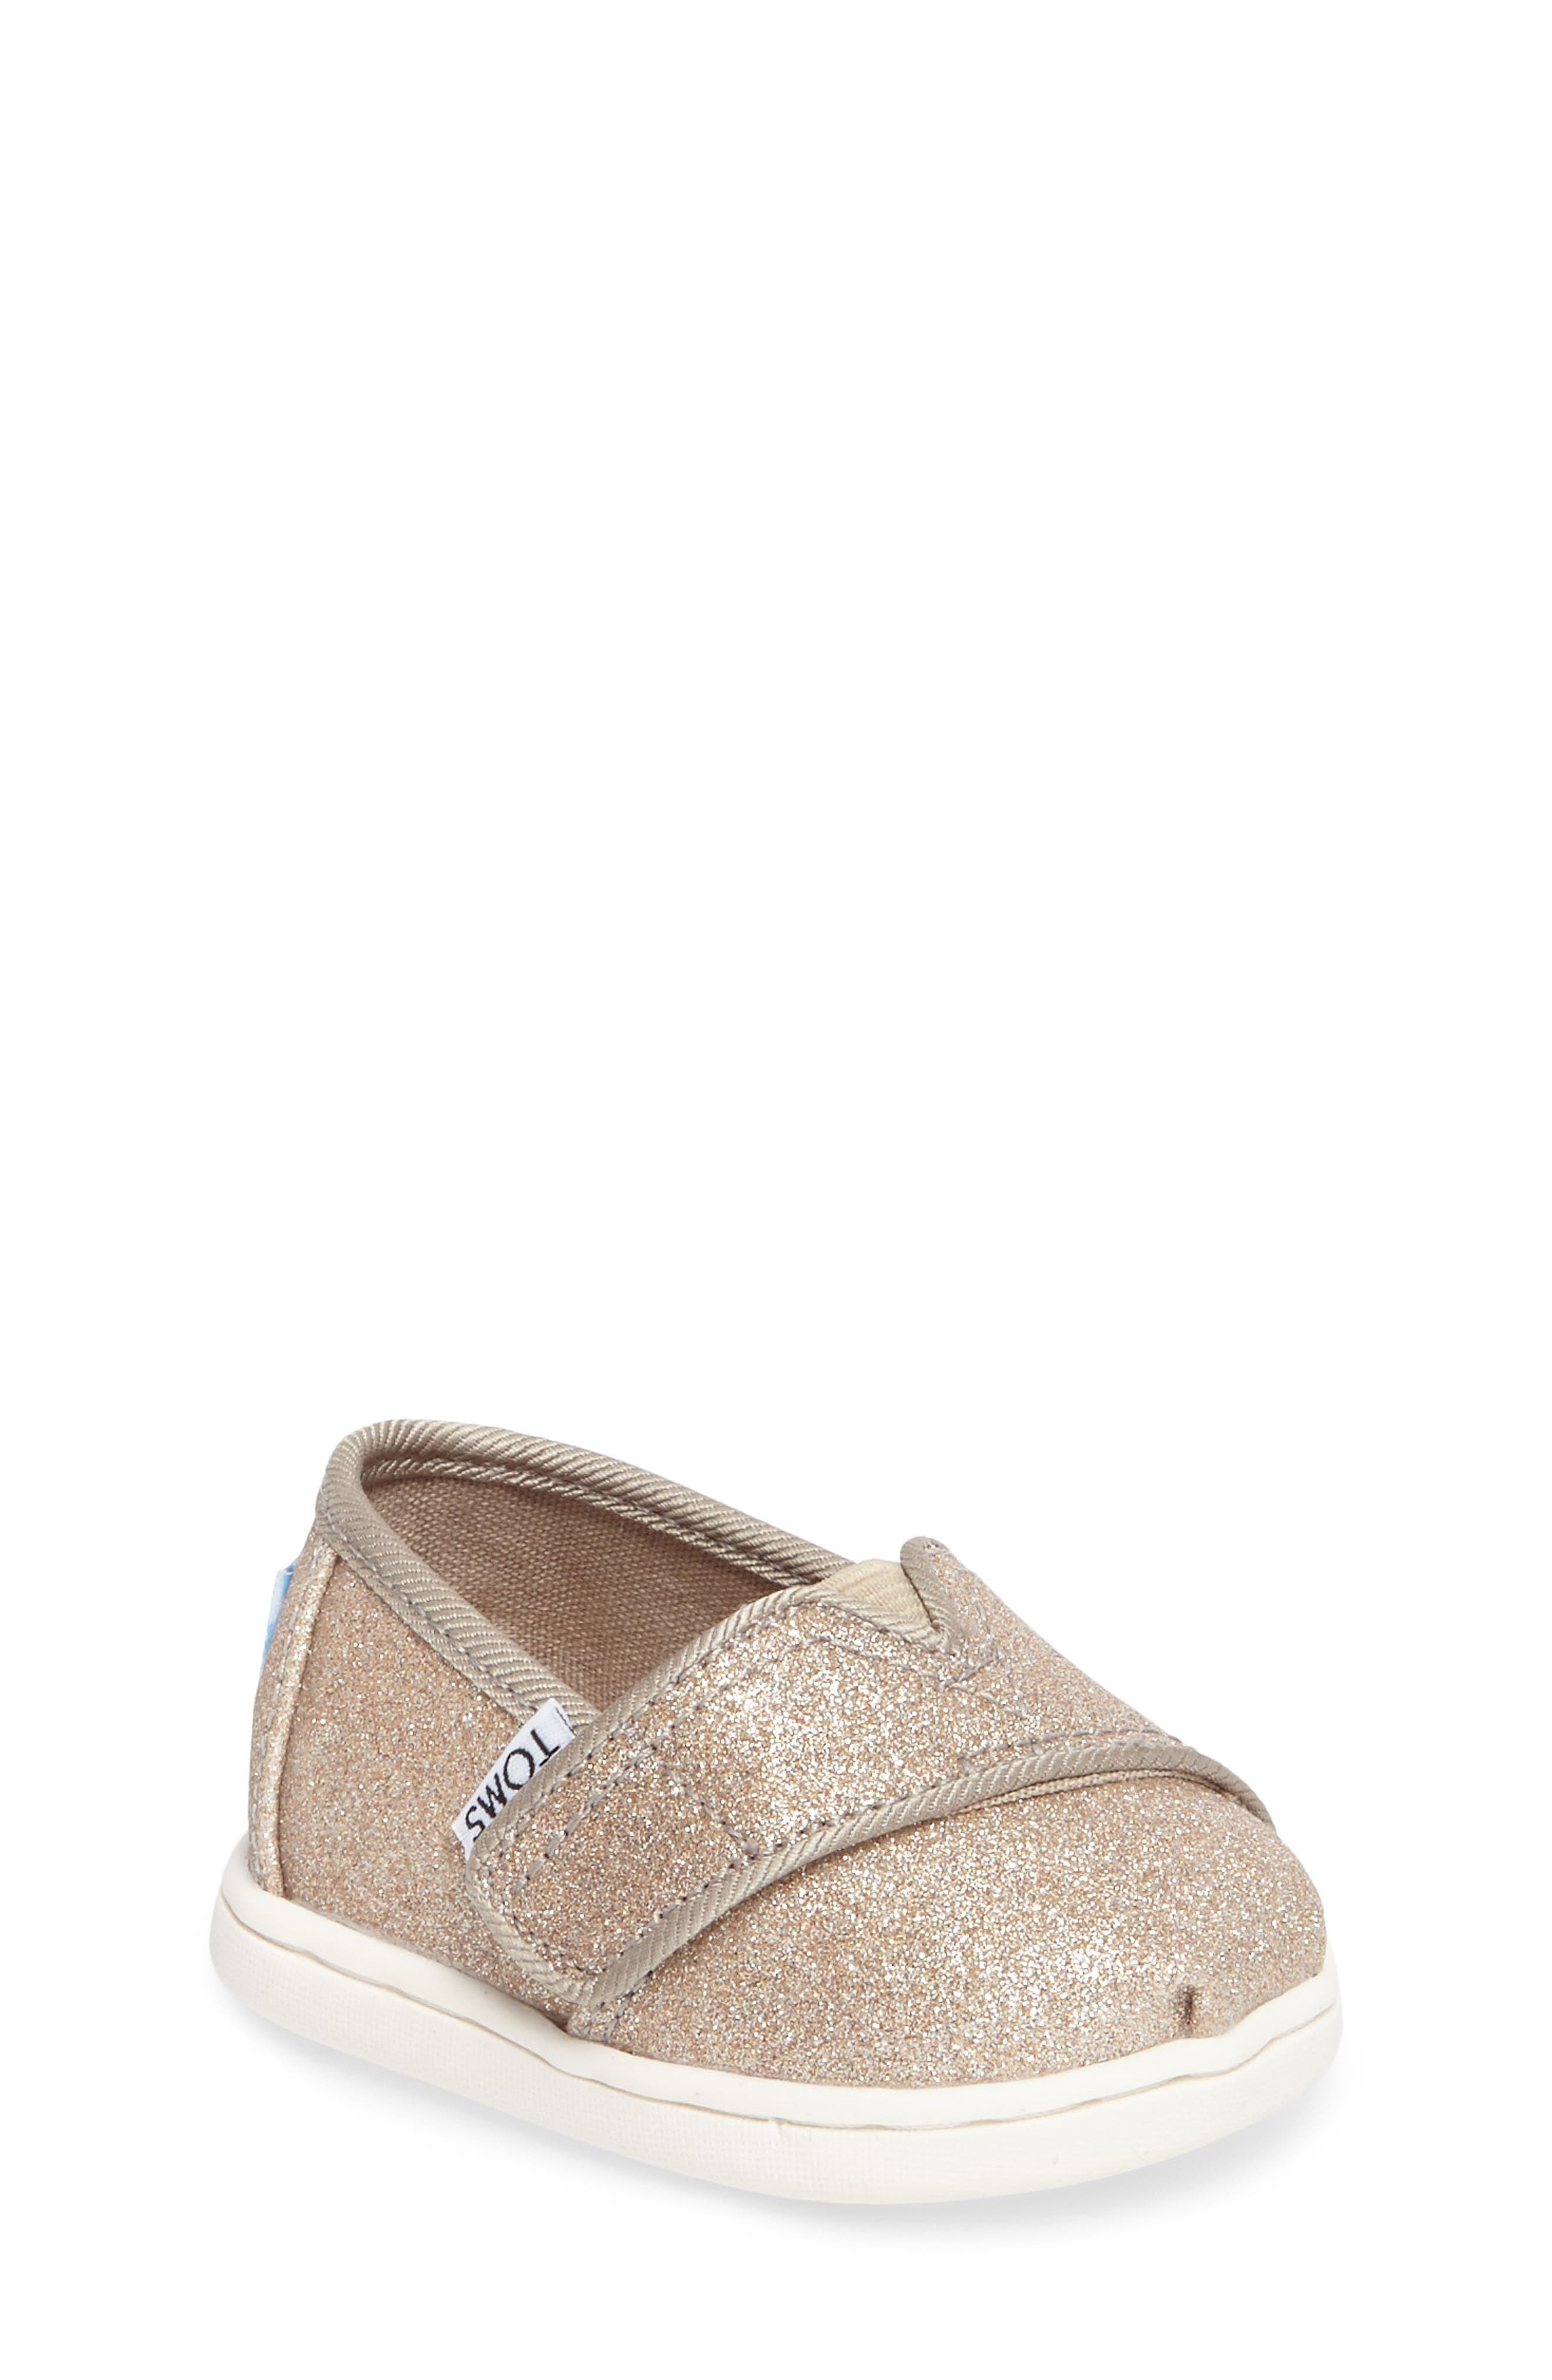 toms shoes zoom en in sea cribs fullxfull crib tiny listing shell il